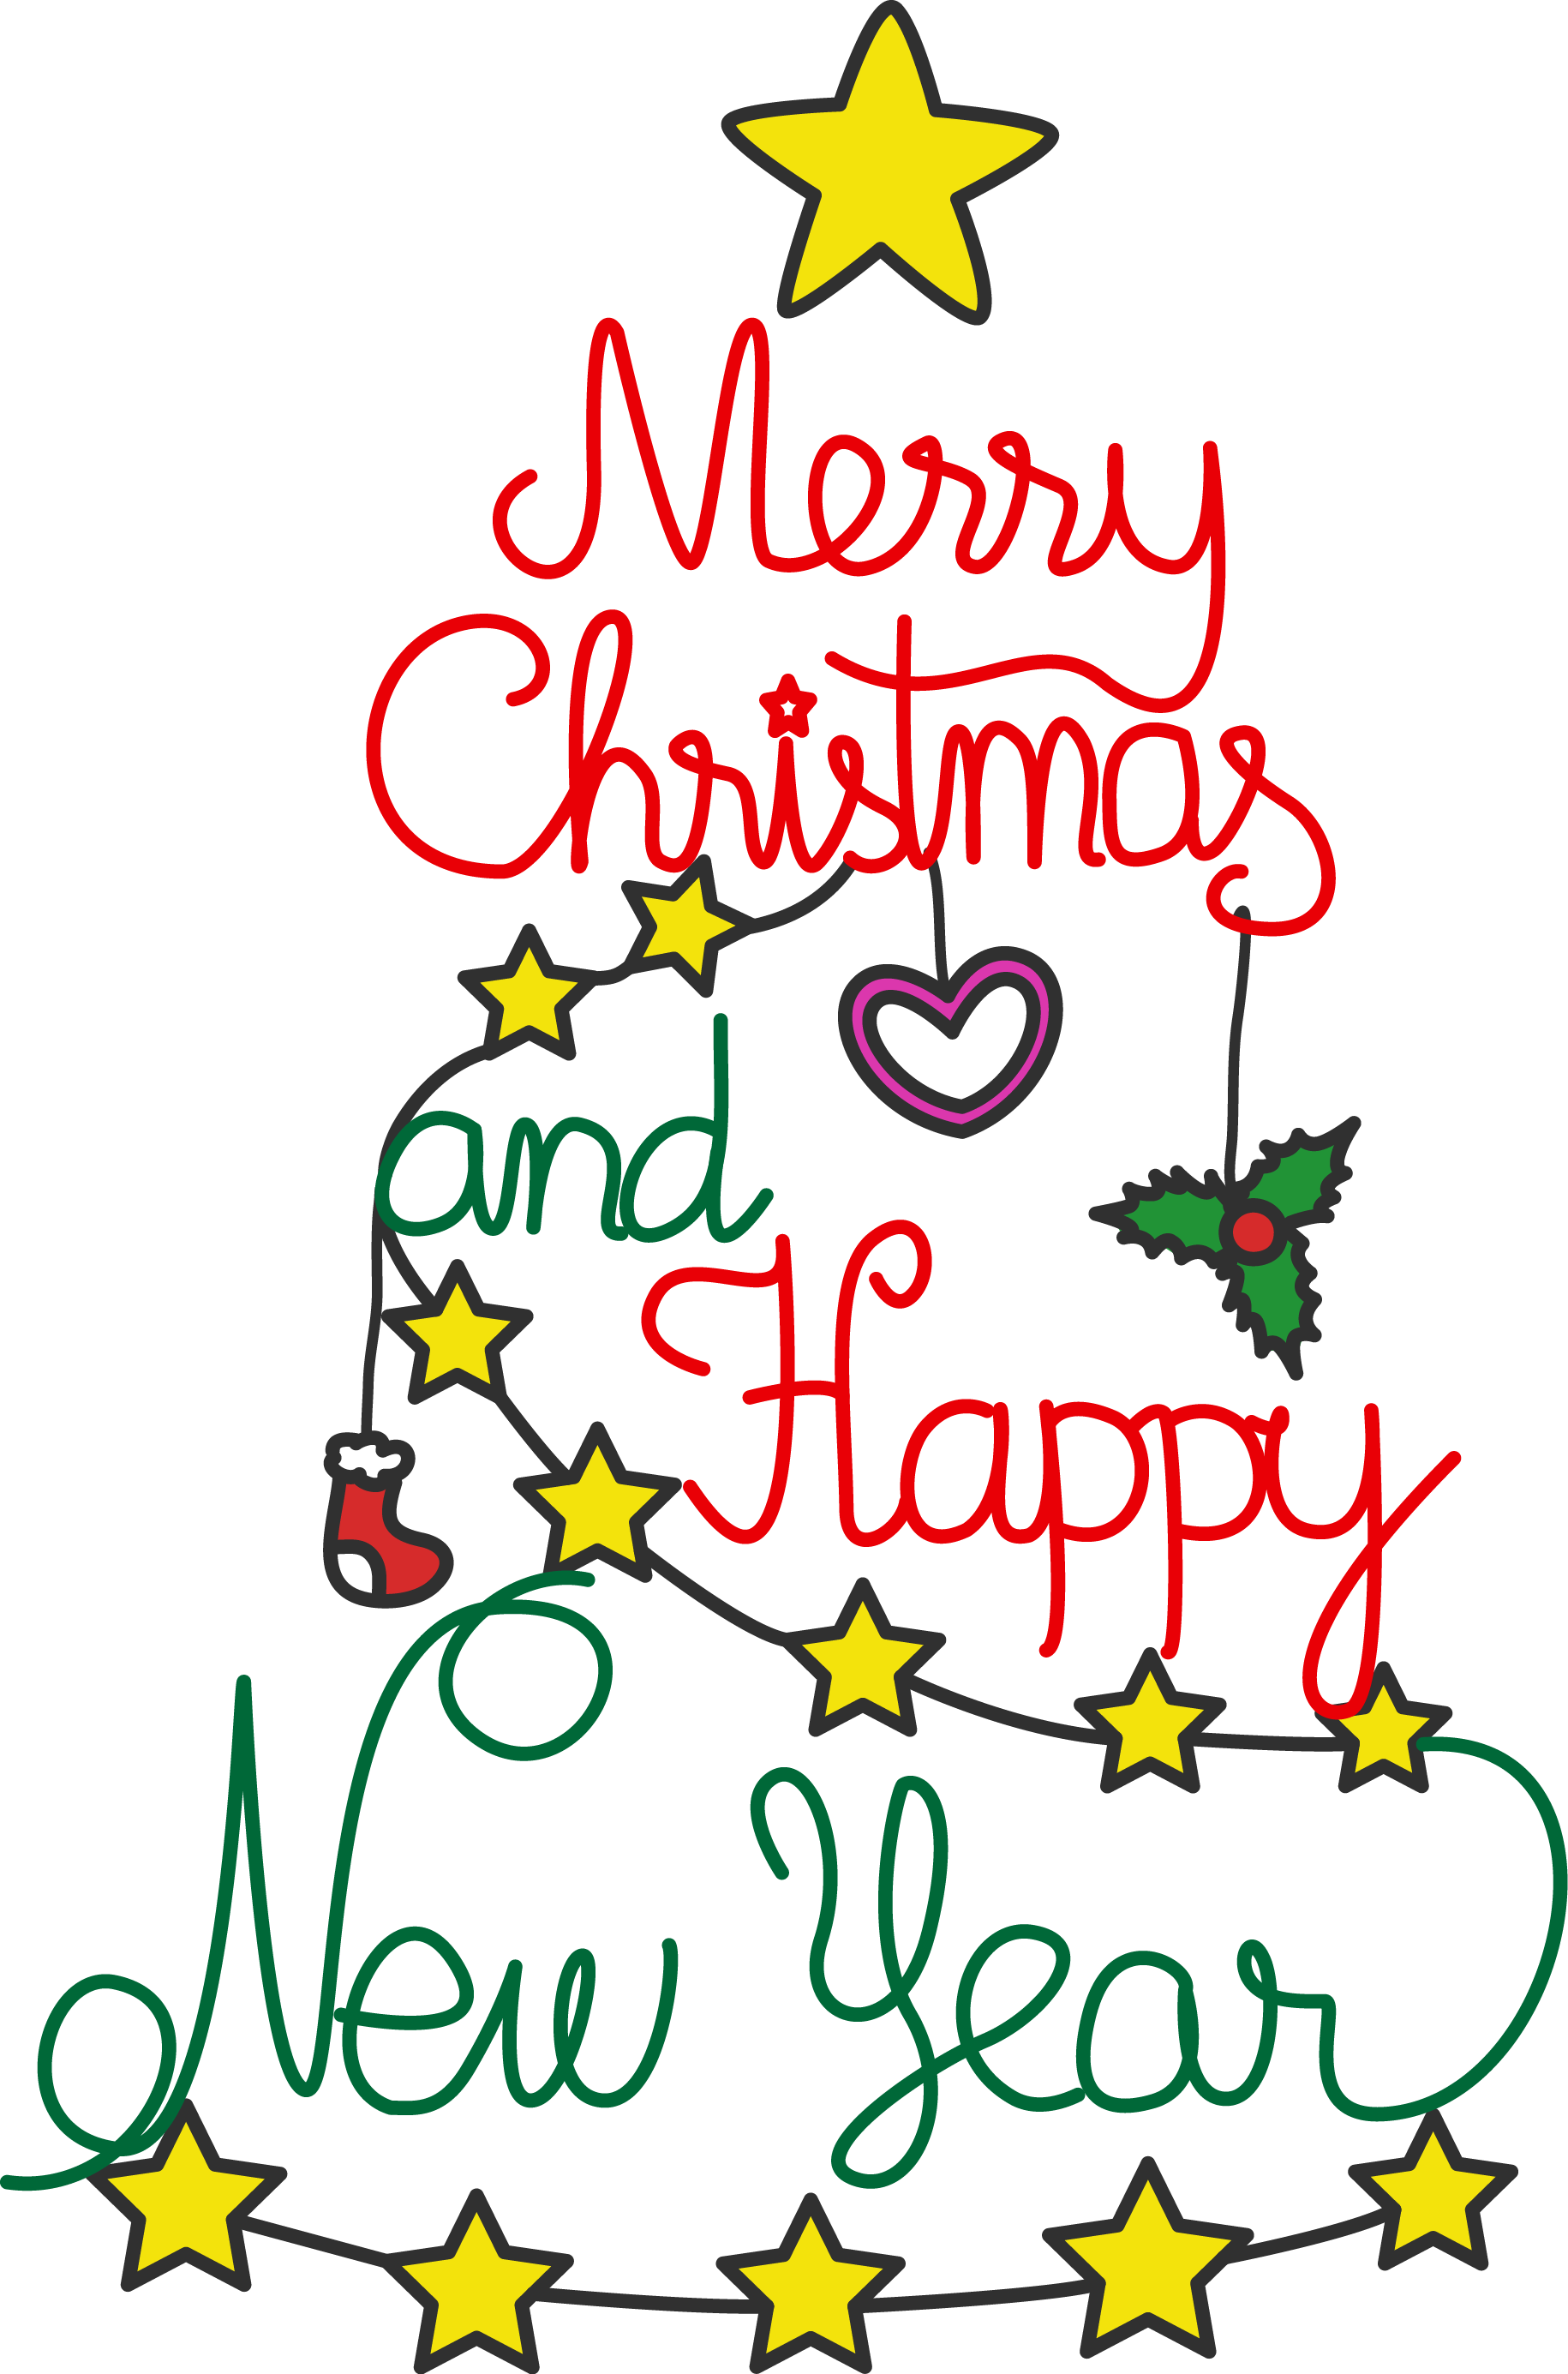 Merry christmas happy new year clipart clipart images gallery for.